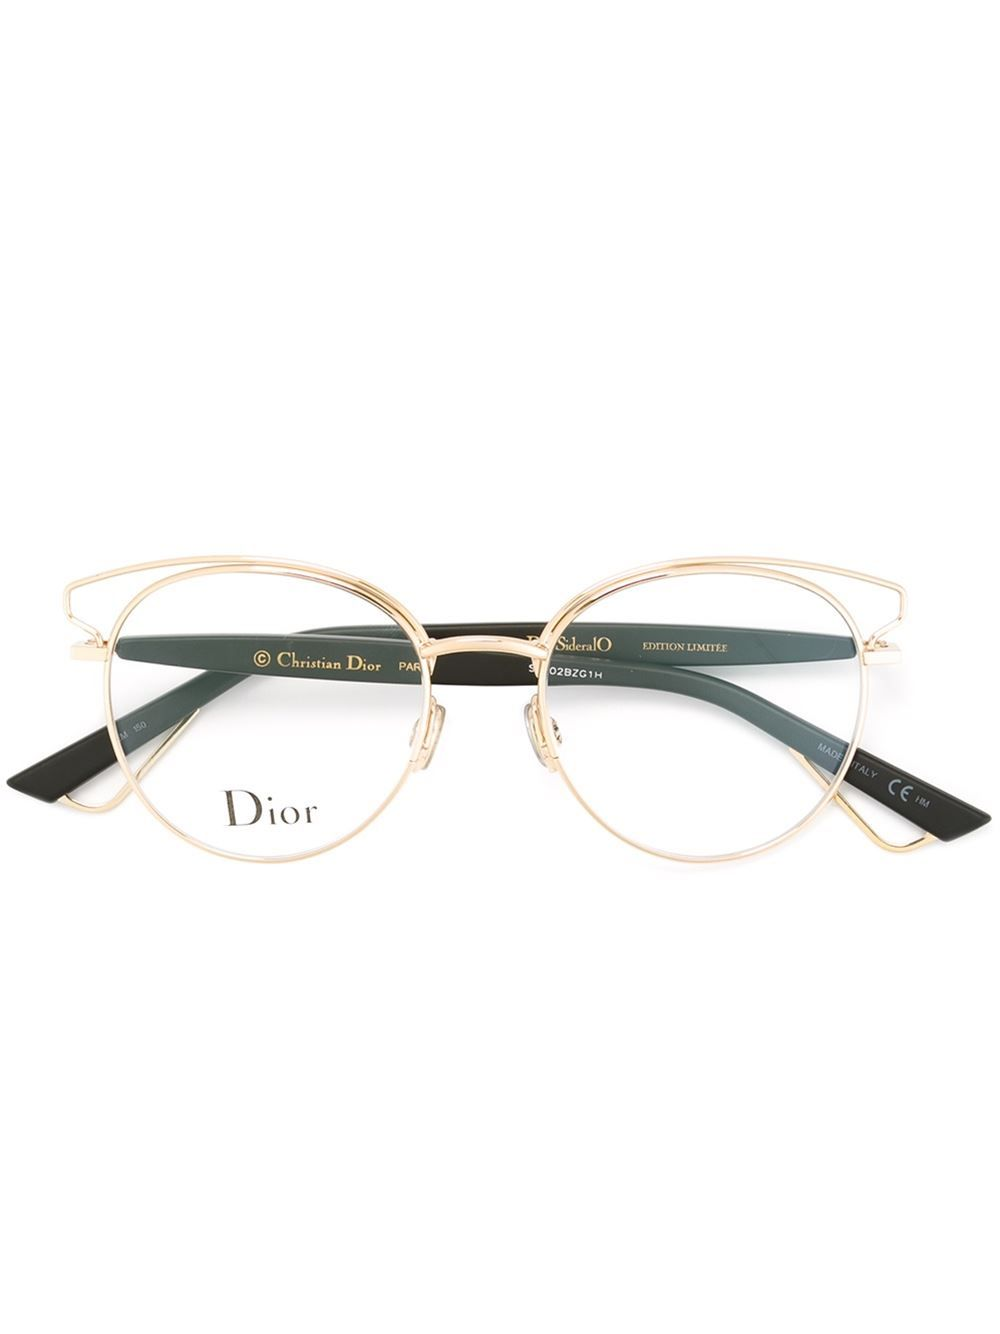 Dior  Sideralo  glasses   coveted in 2019   Pinterest   Glasses ... 97a14adc6f